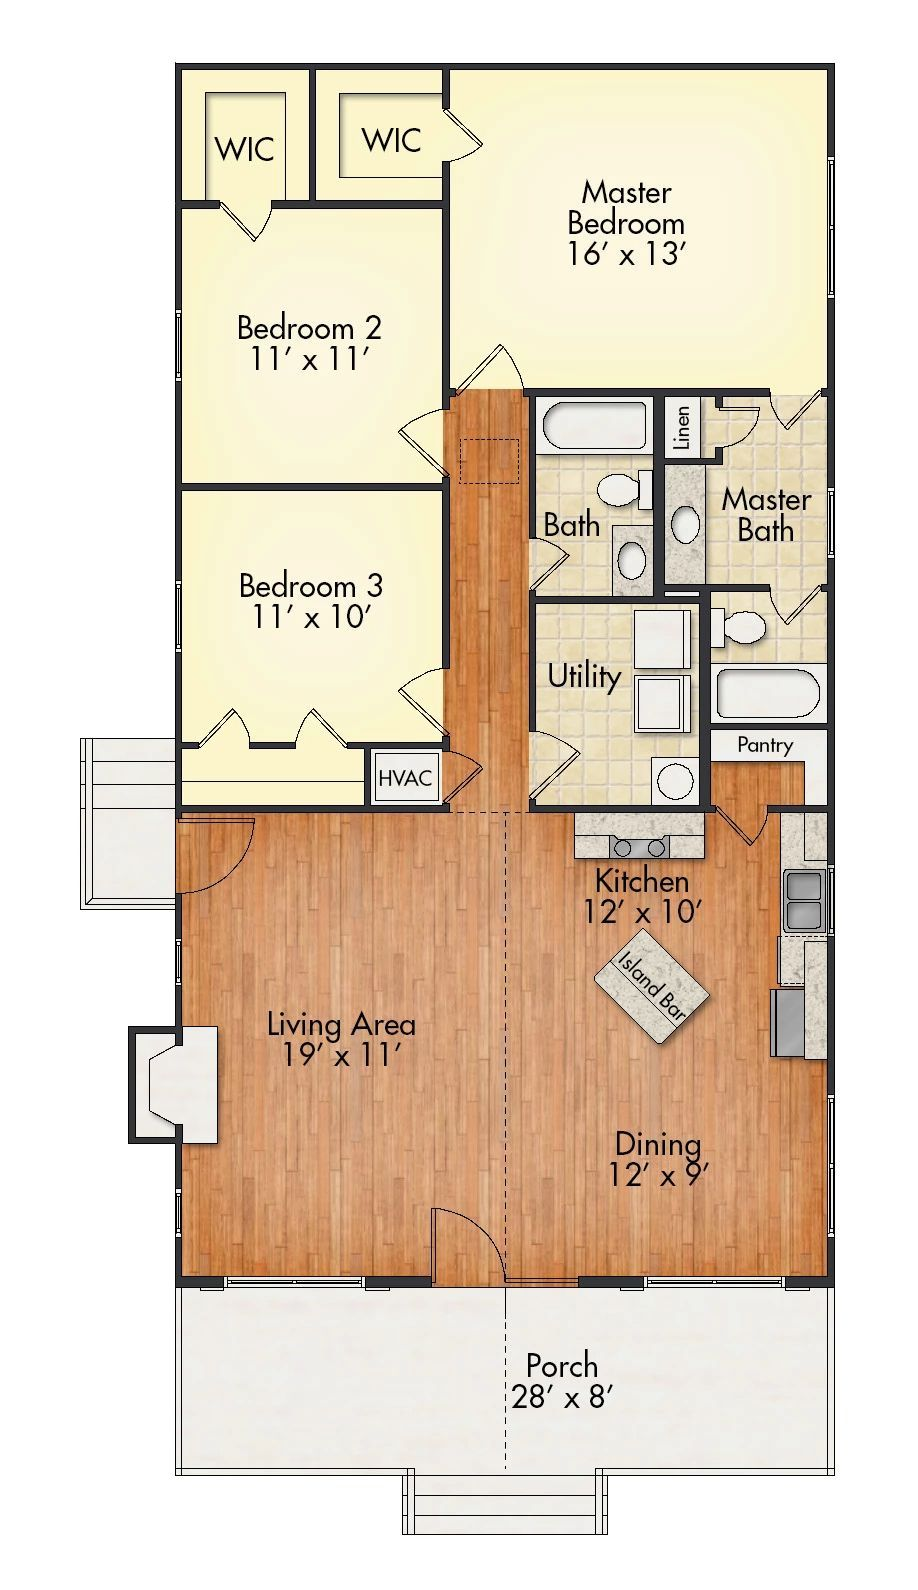 With An Open Floor Plan The Aspen Features An Inviting Porch And A Generous Family Area With A Loft House House Floor Plans House Plans